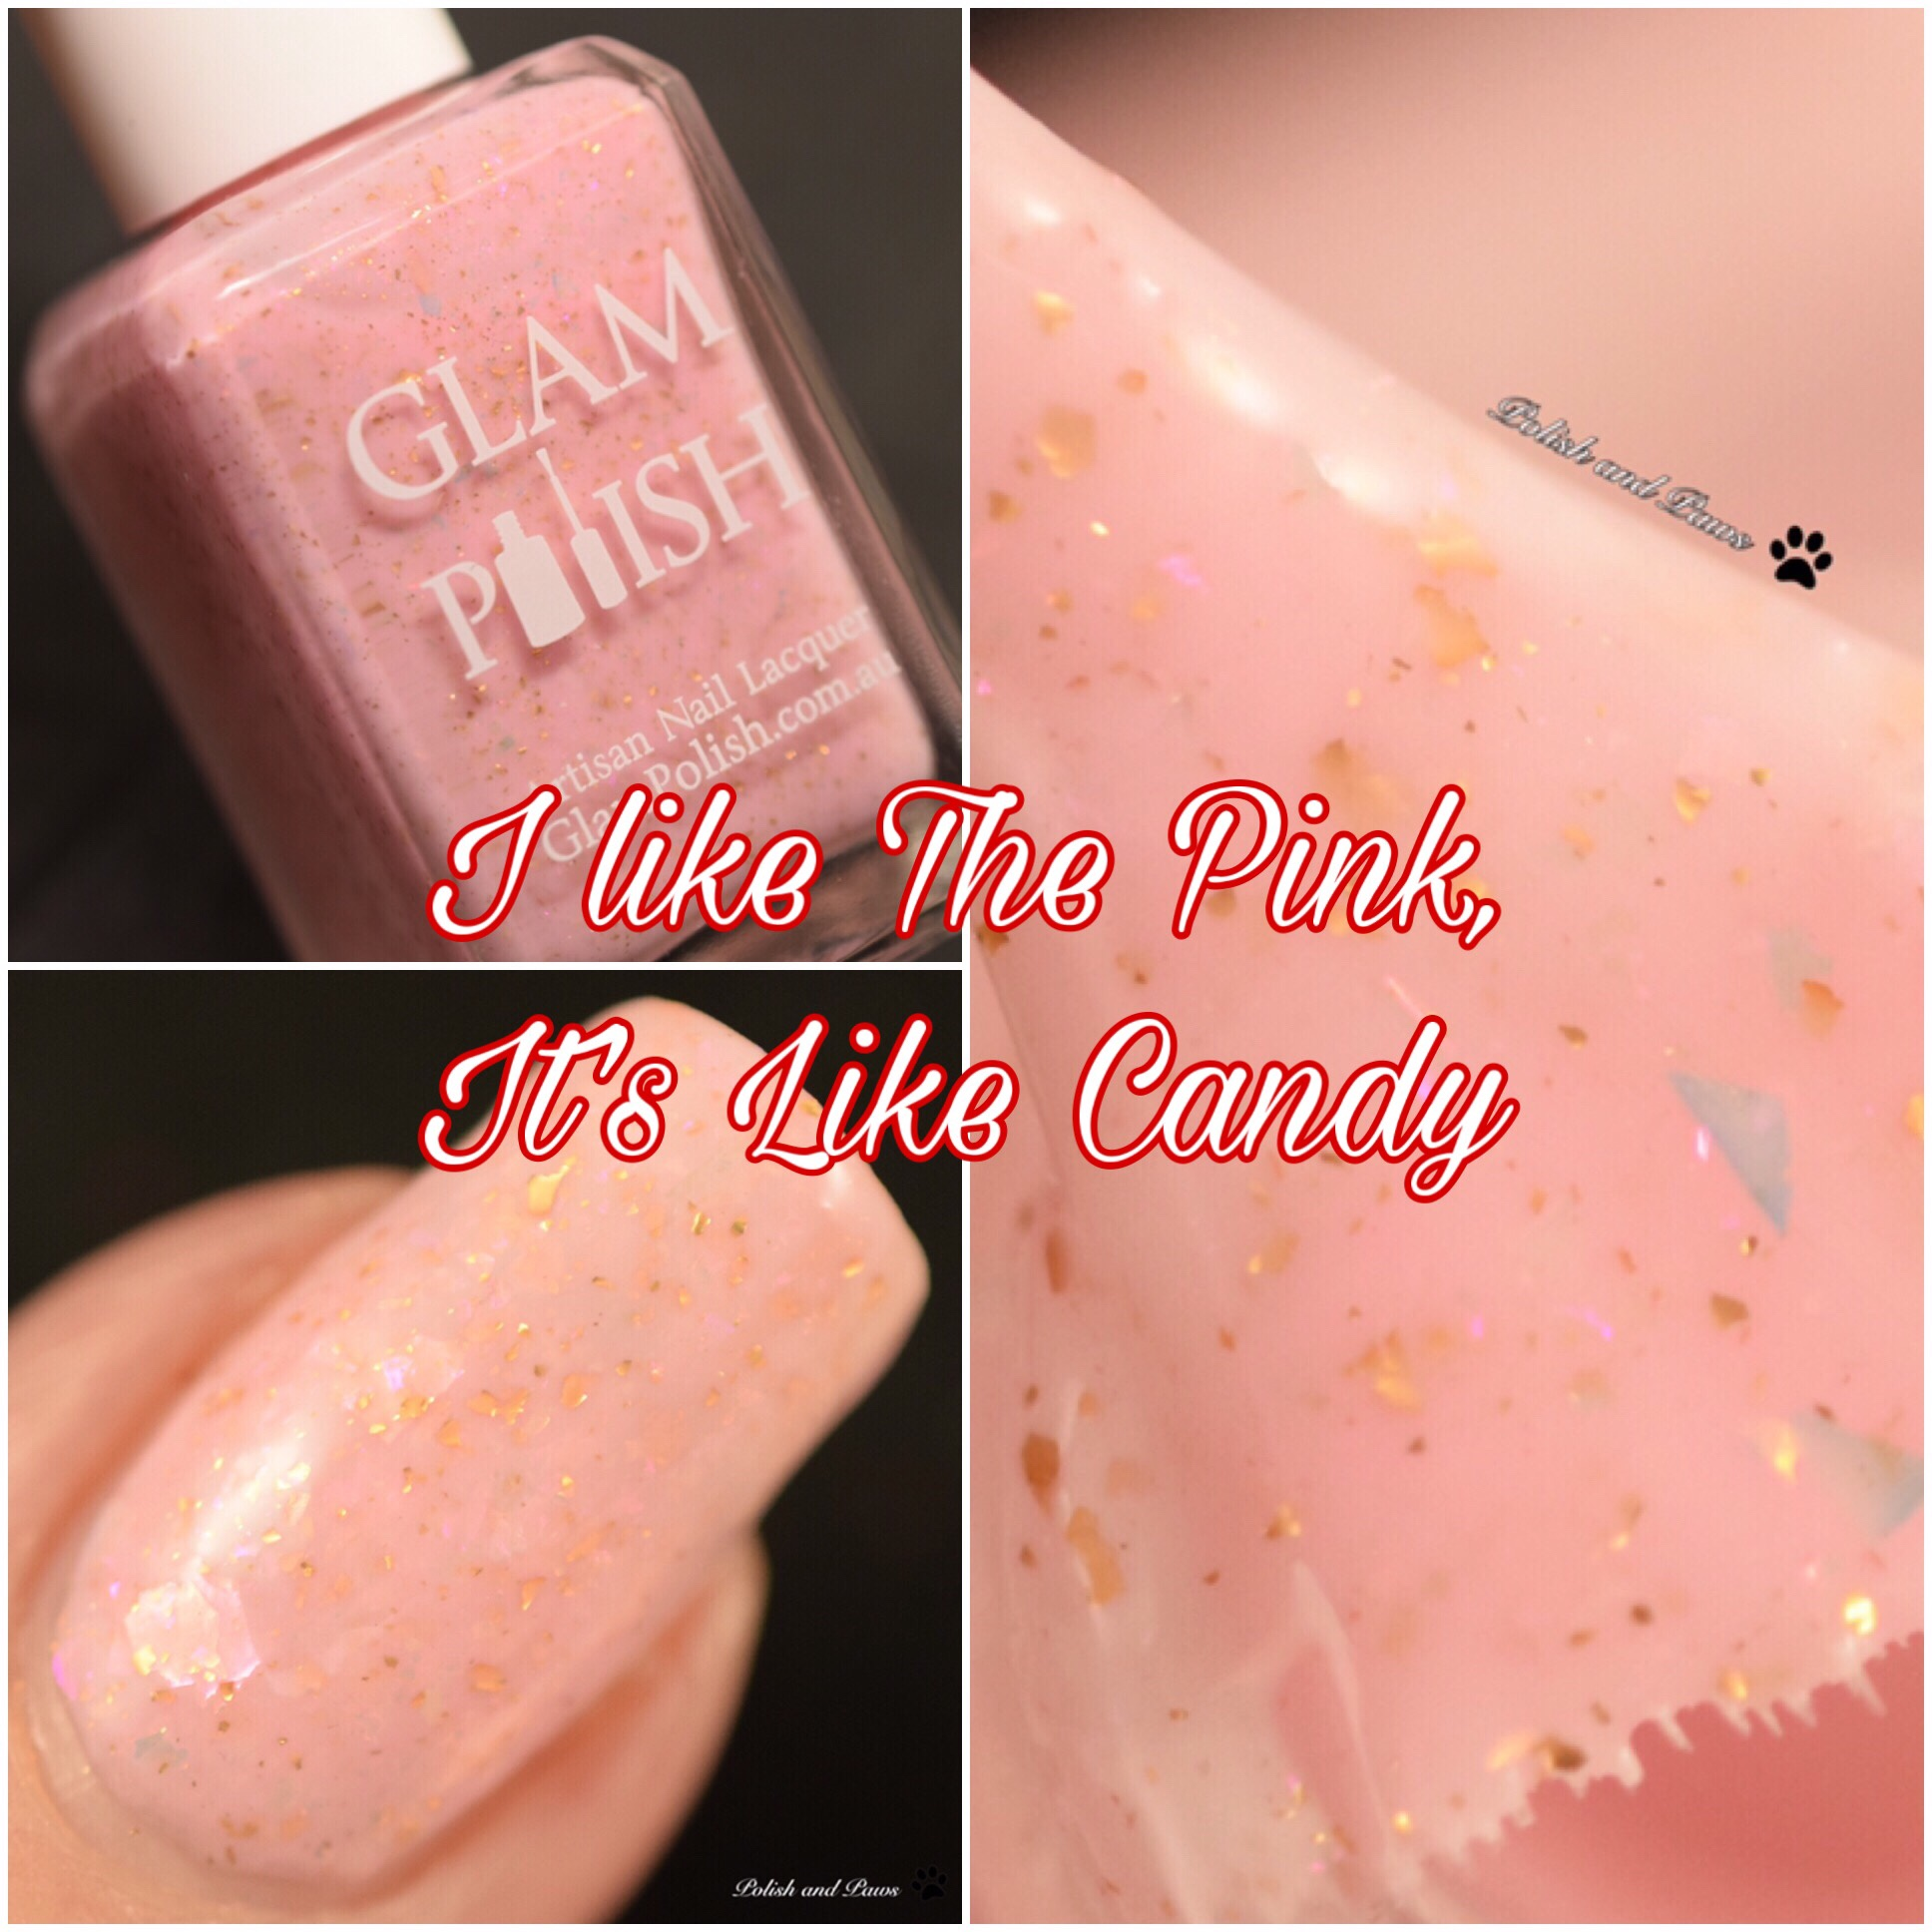 Glam Polish I Like the Pink, it's like Candy